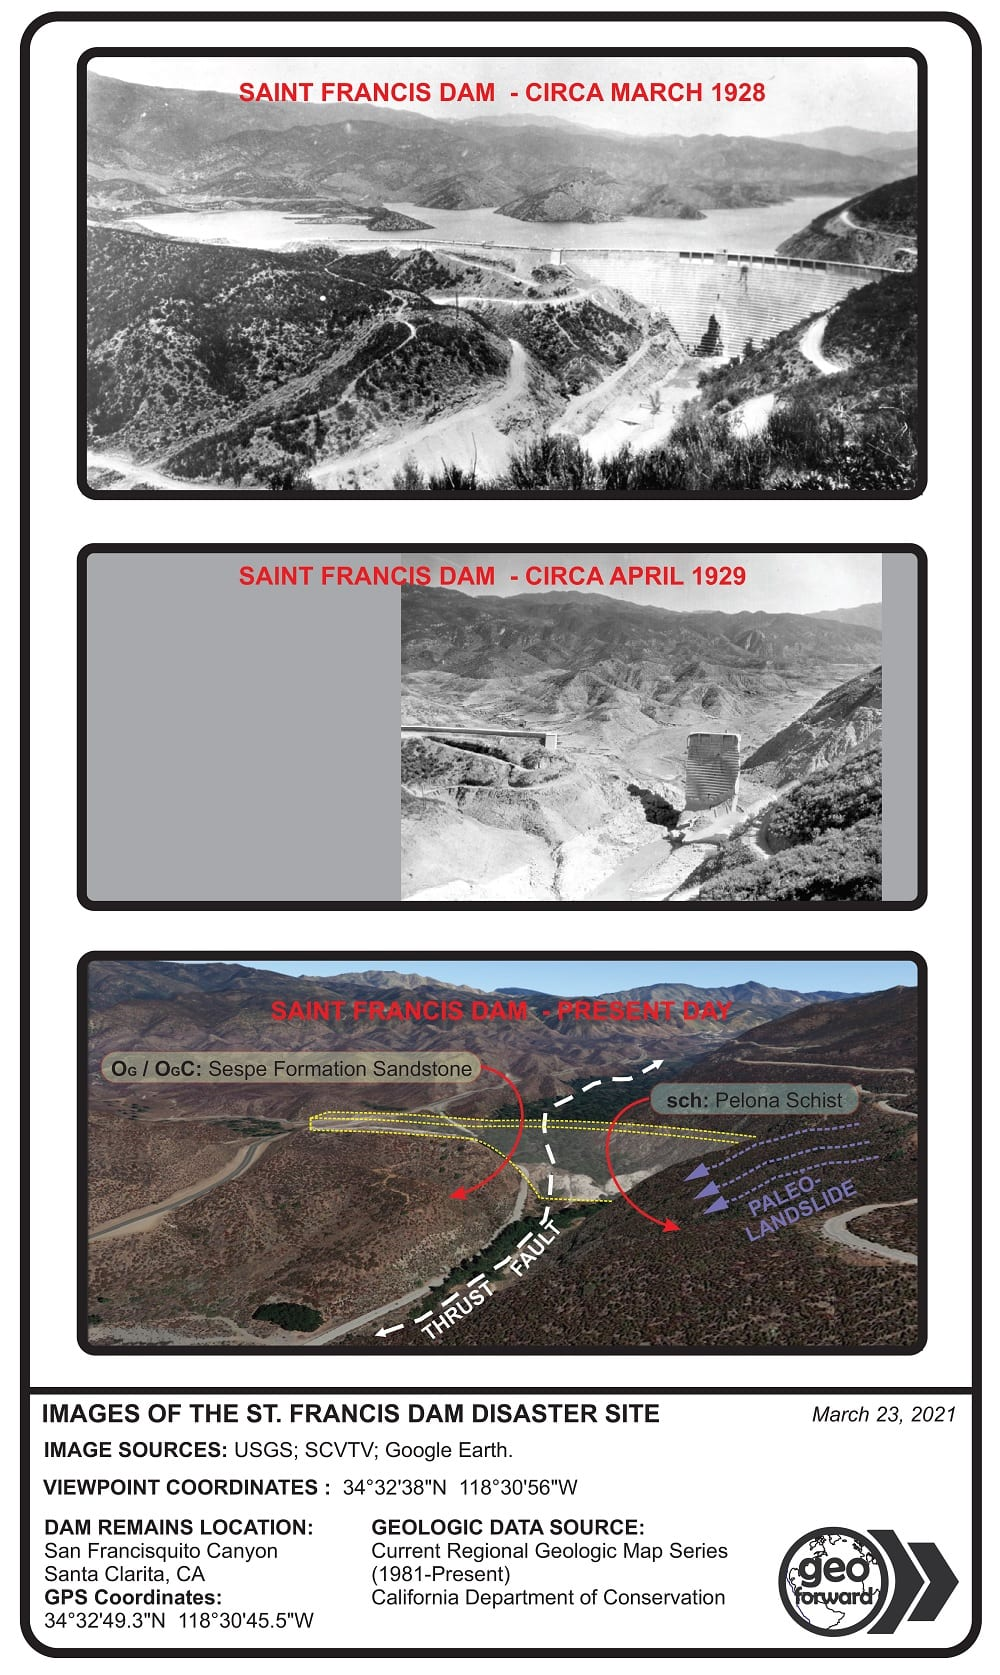 Unmitigated geologic hazards (unknown at the time) are what caused the St. Francis Dam to collapse.